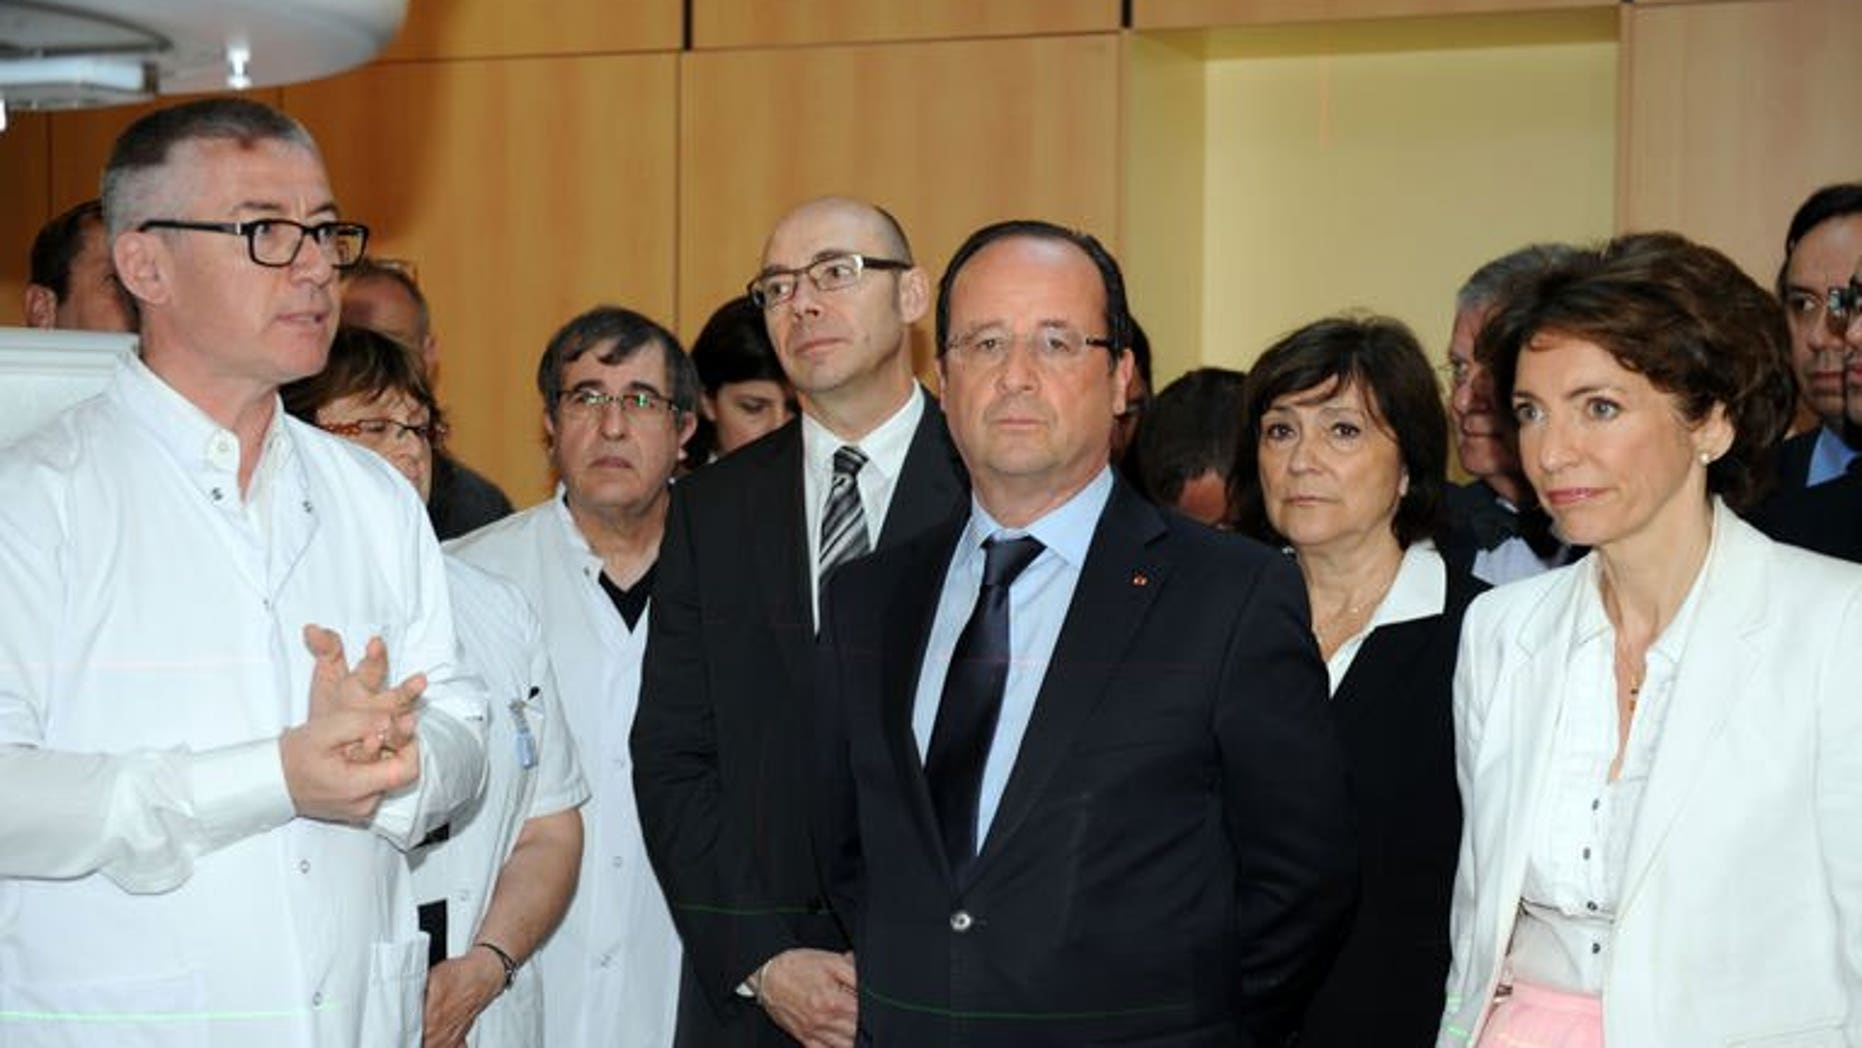 French President Francois Hollande (centre) visits the Bretagne Sud hospital in Brest, western France, on July 1, 2013. Hollande has told the United States to immediately cease spying on European institutions, after reports of covert US surveillance of EU diplomatic missions.